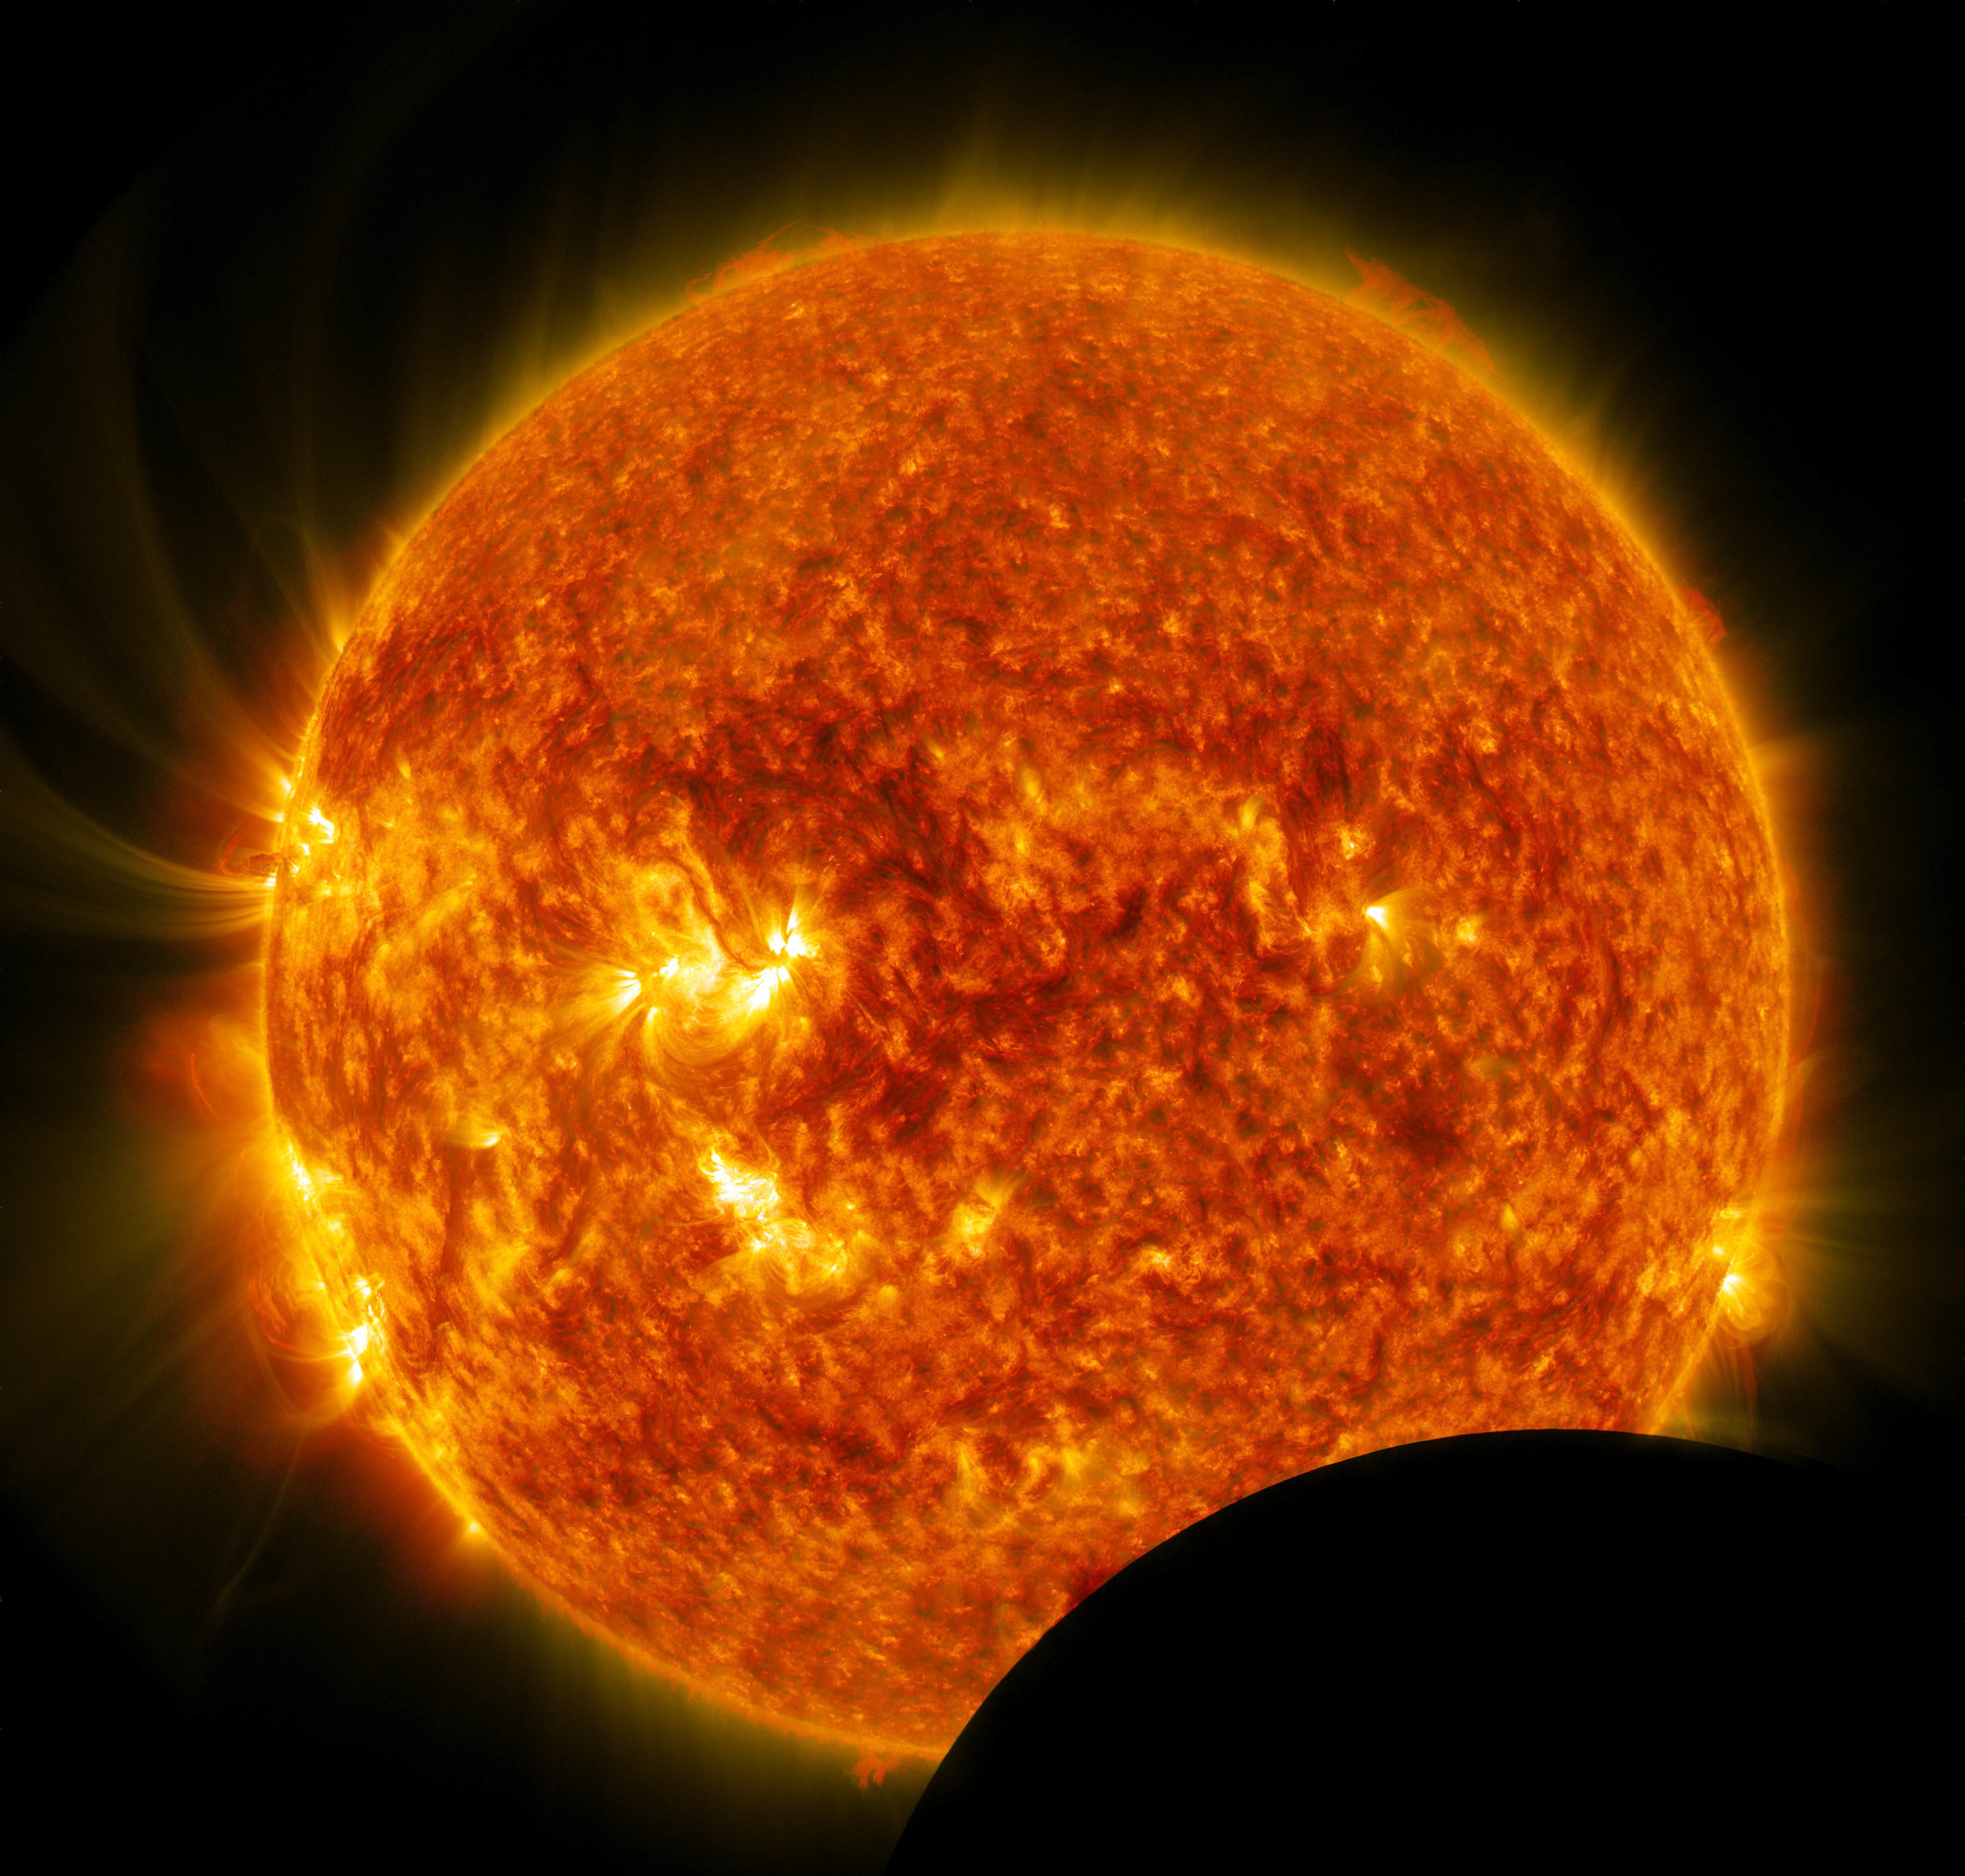 On July 26, 2014, from 10:57 a.m. to 11:42 a.m. EDT, the moon crossed between NASA's Solar Dynamics Observatory (SDO) and the sun, a phenomenon called a lunar transit. A lunar transit happens approximately twice a year, causing a partial solar eclipse that can only be seen from SDO's point of view. Images of the eclipse show a crisp lunar horizon, because the moon has no atmosphere that would distort light. This image shows the blended result of two SDO wavelengths - one in 304 wavelength and another in 171 wavelength. Image Credit: NASA/SDO